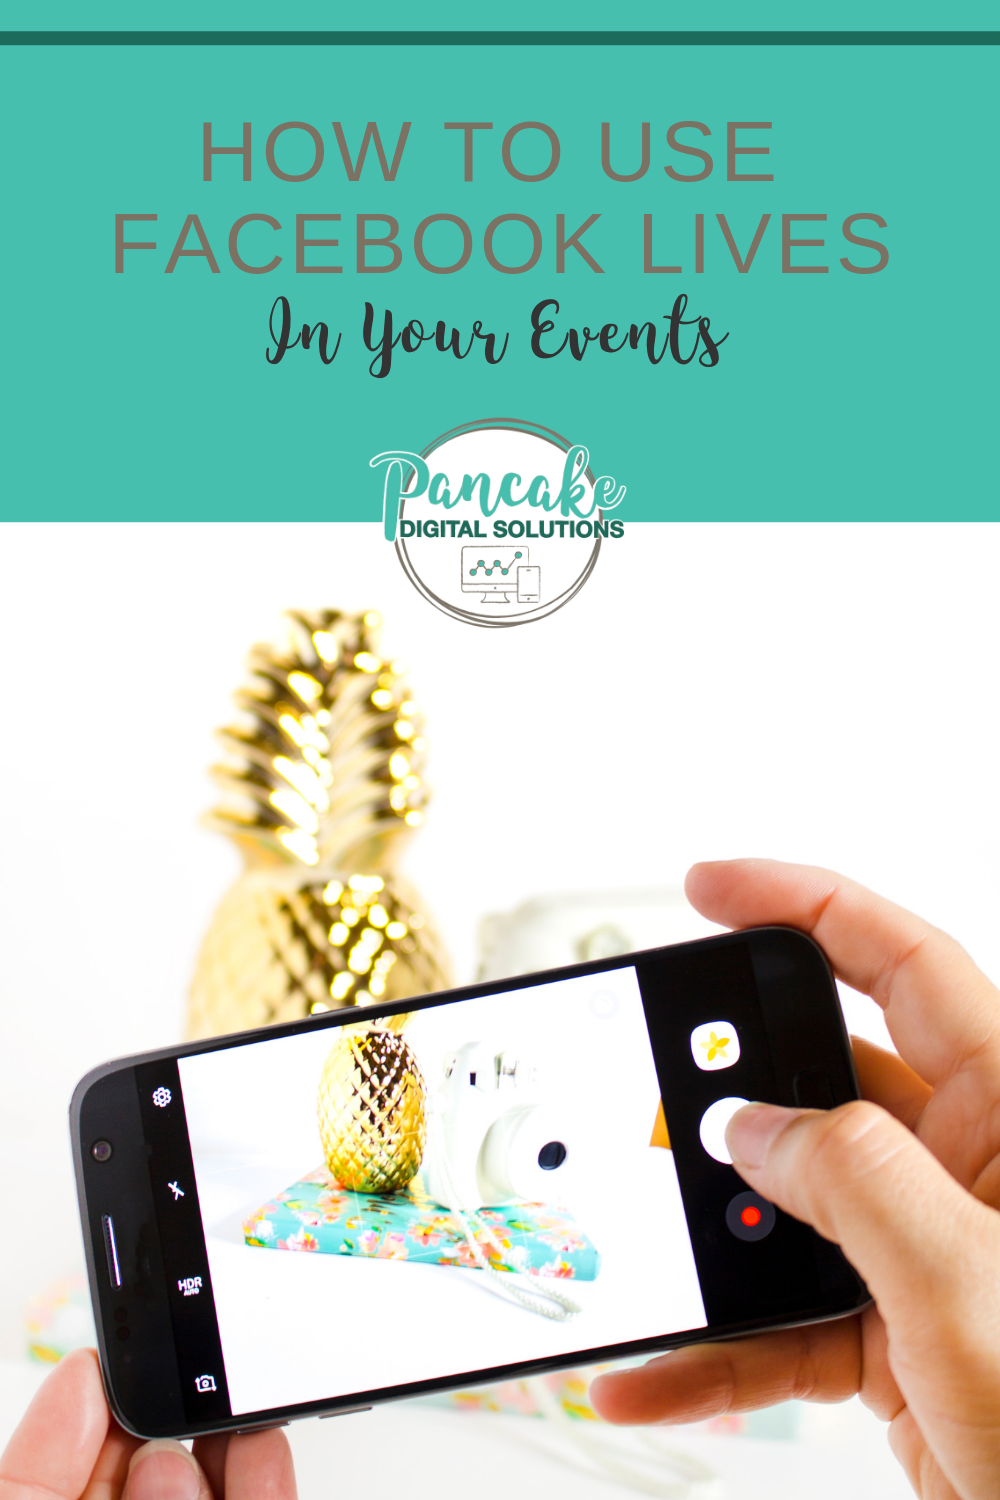 Facebook Live In Events Going Live For Higher Event Attendance Using Facebook For Business Marketing Strategy Social Media How To Use Facebook